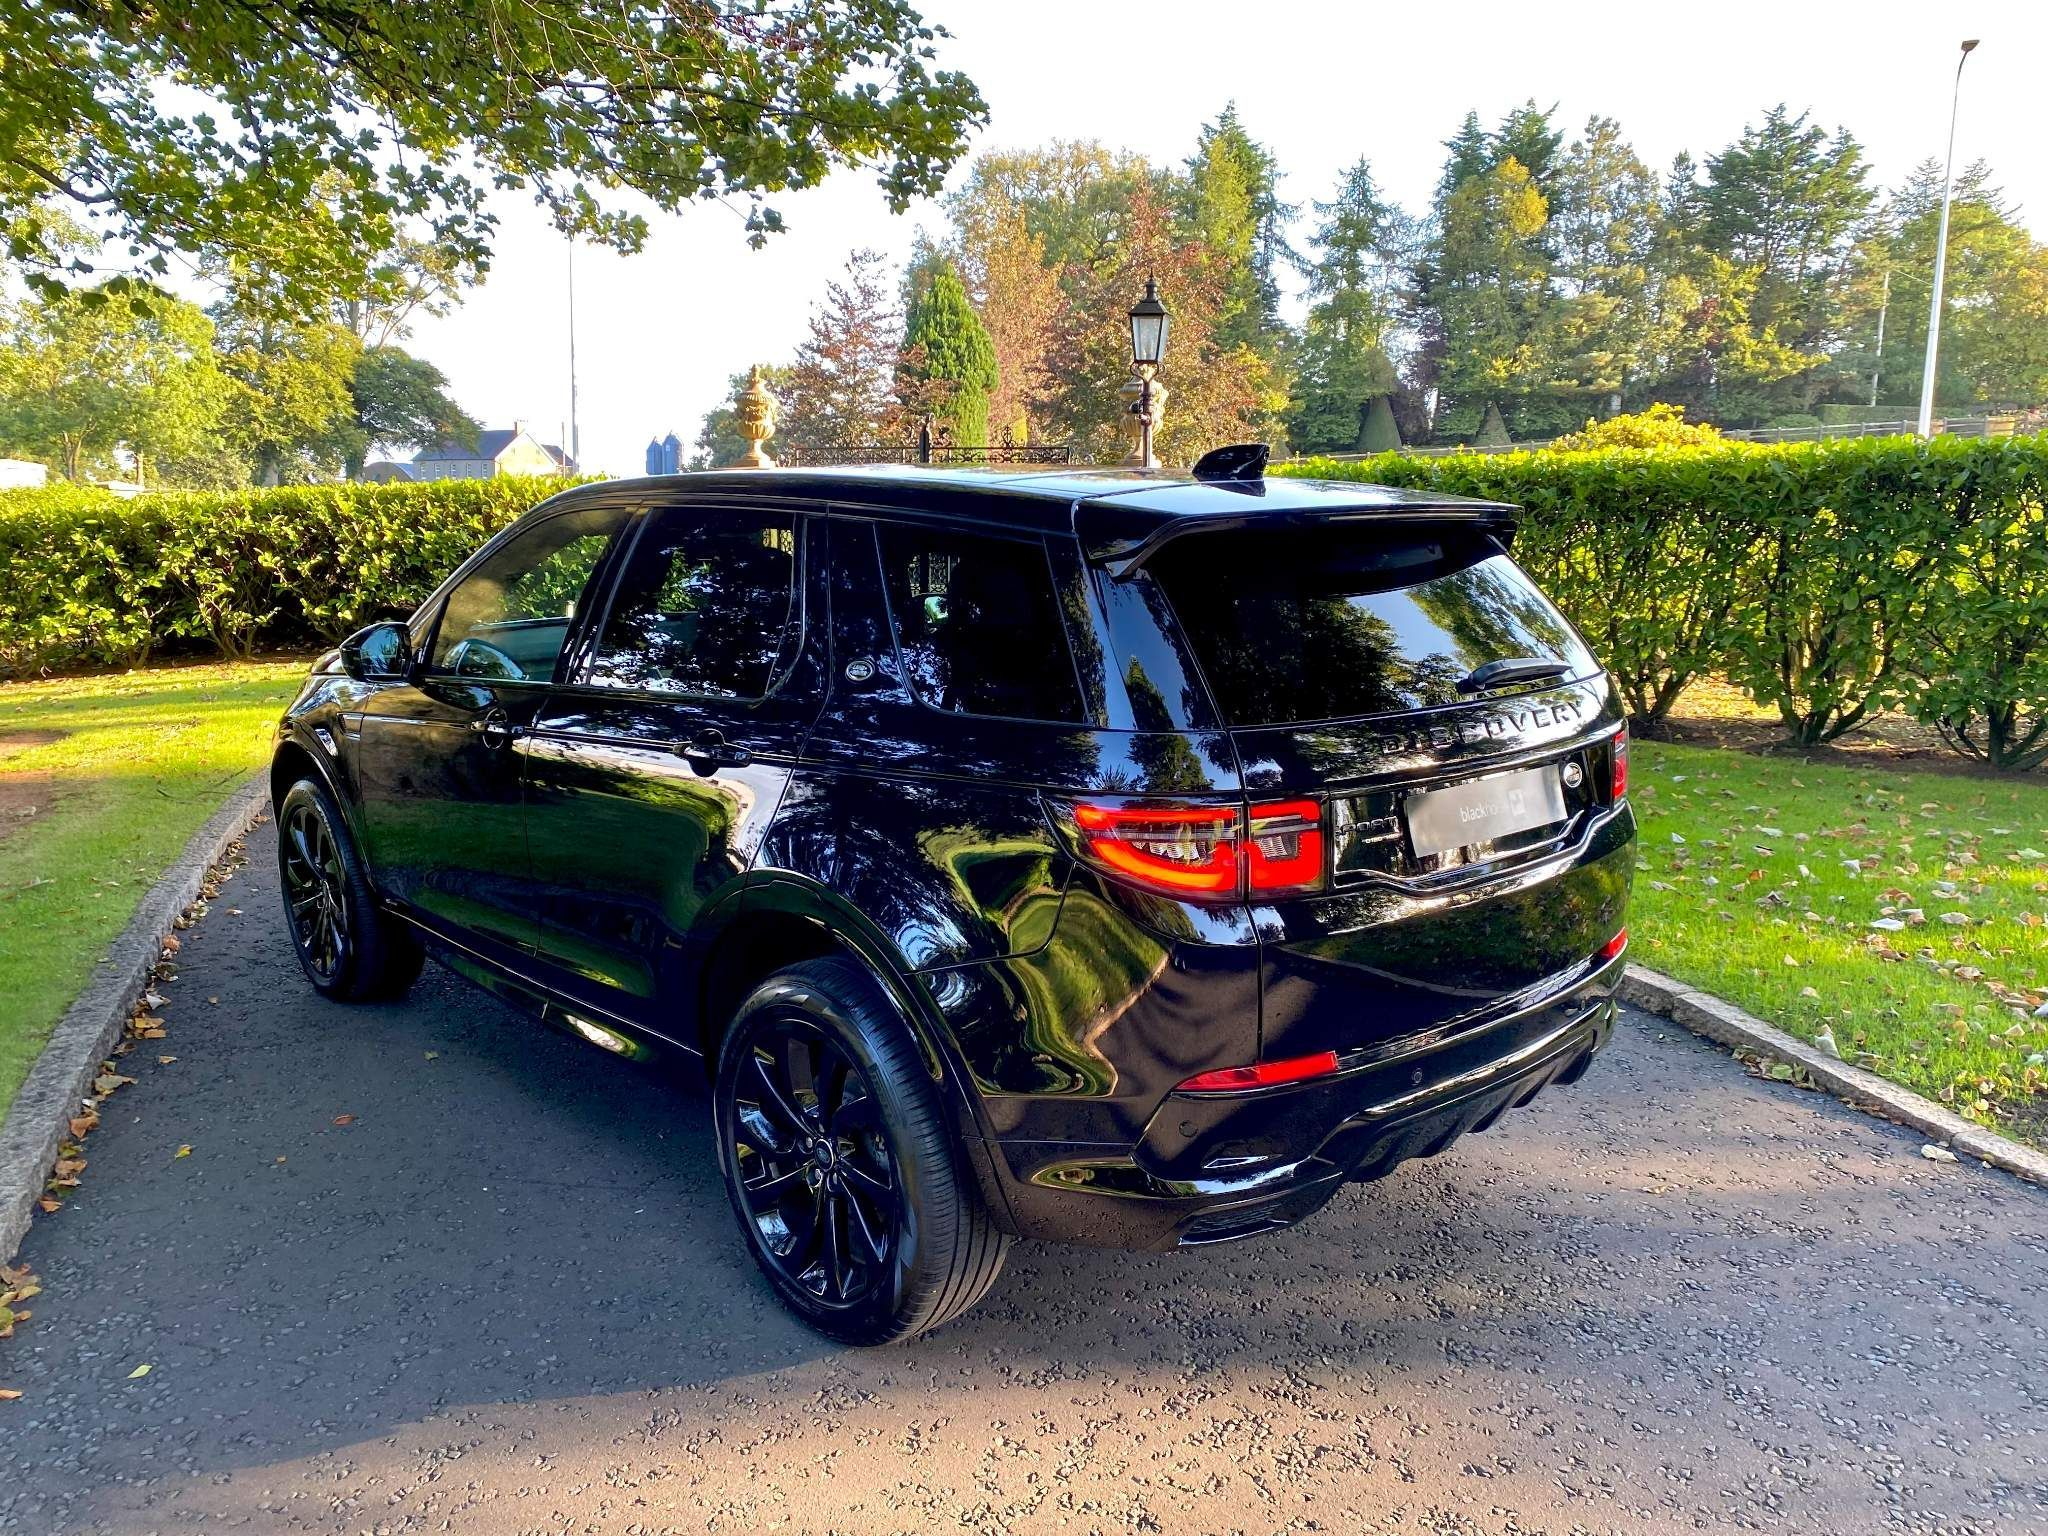 2020 Land Rover Discovery Sport 2.0 D180 MHEV R-Dynamic HSE 4WD (s/s) 5dr (7 Seat) Diesel Automatic – Moyway Motors Dungannon full